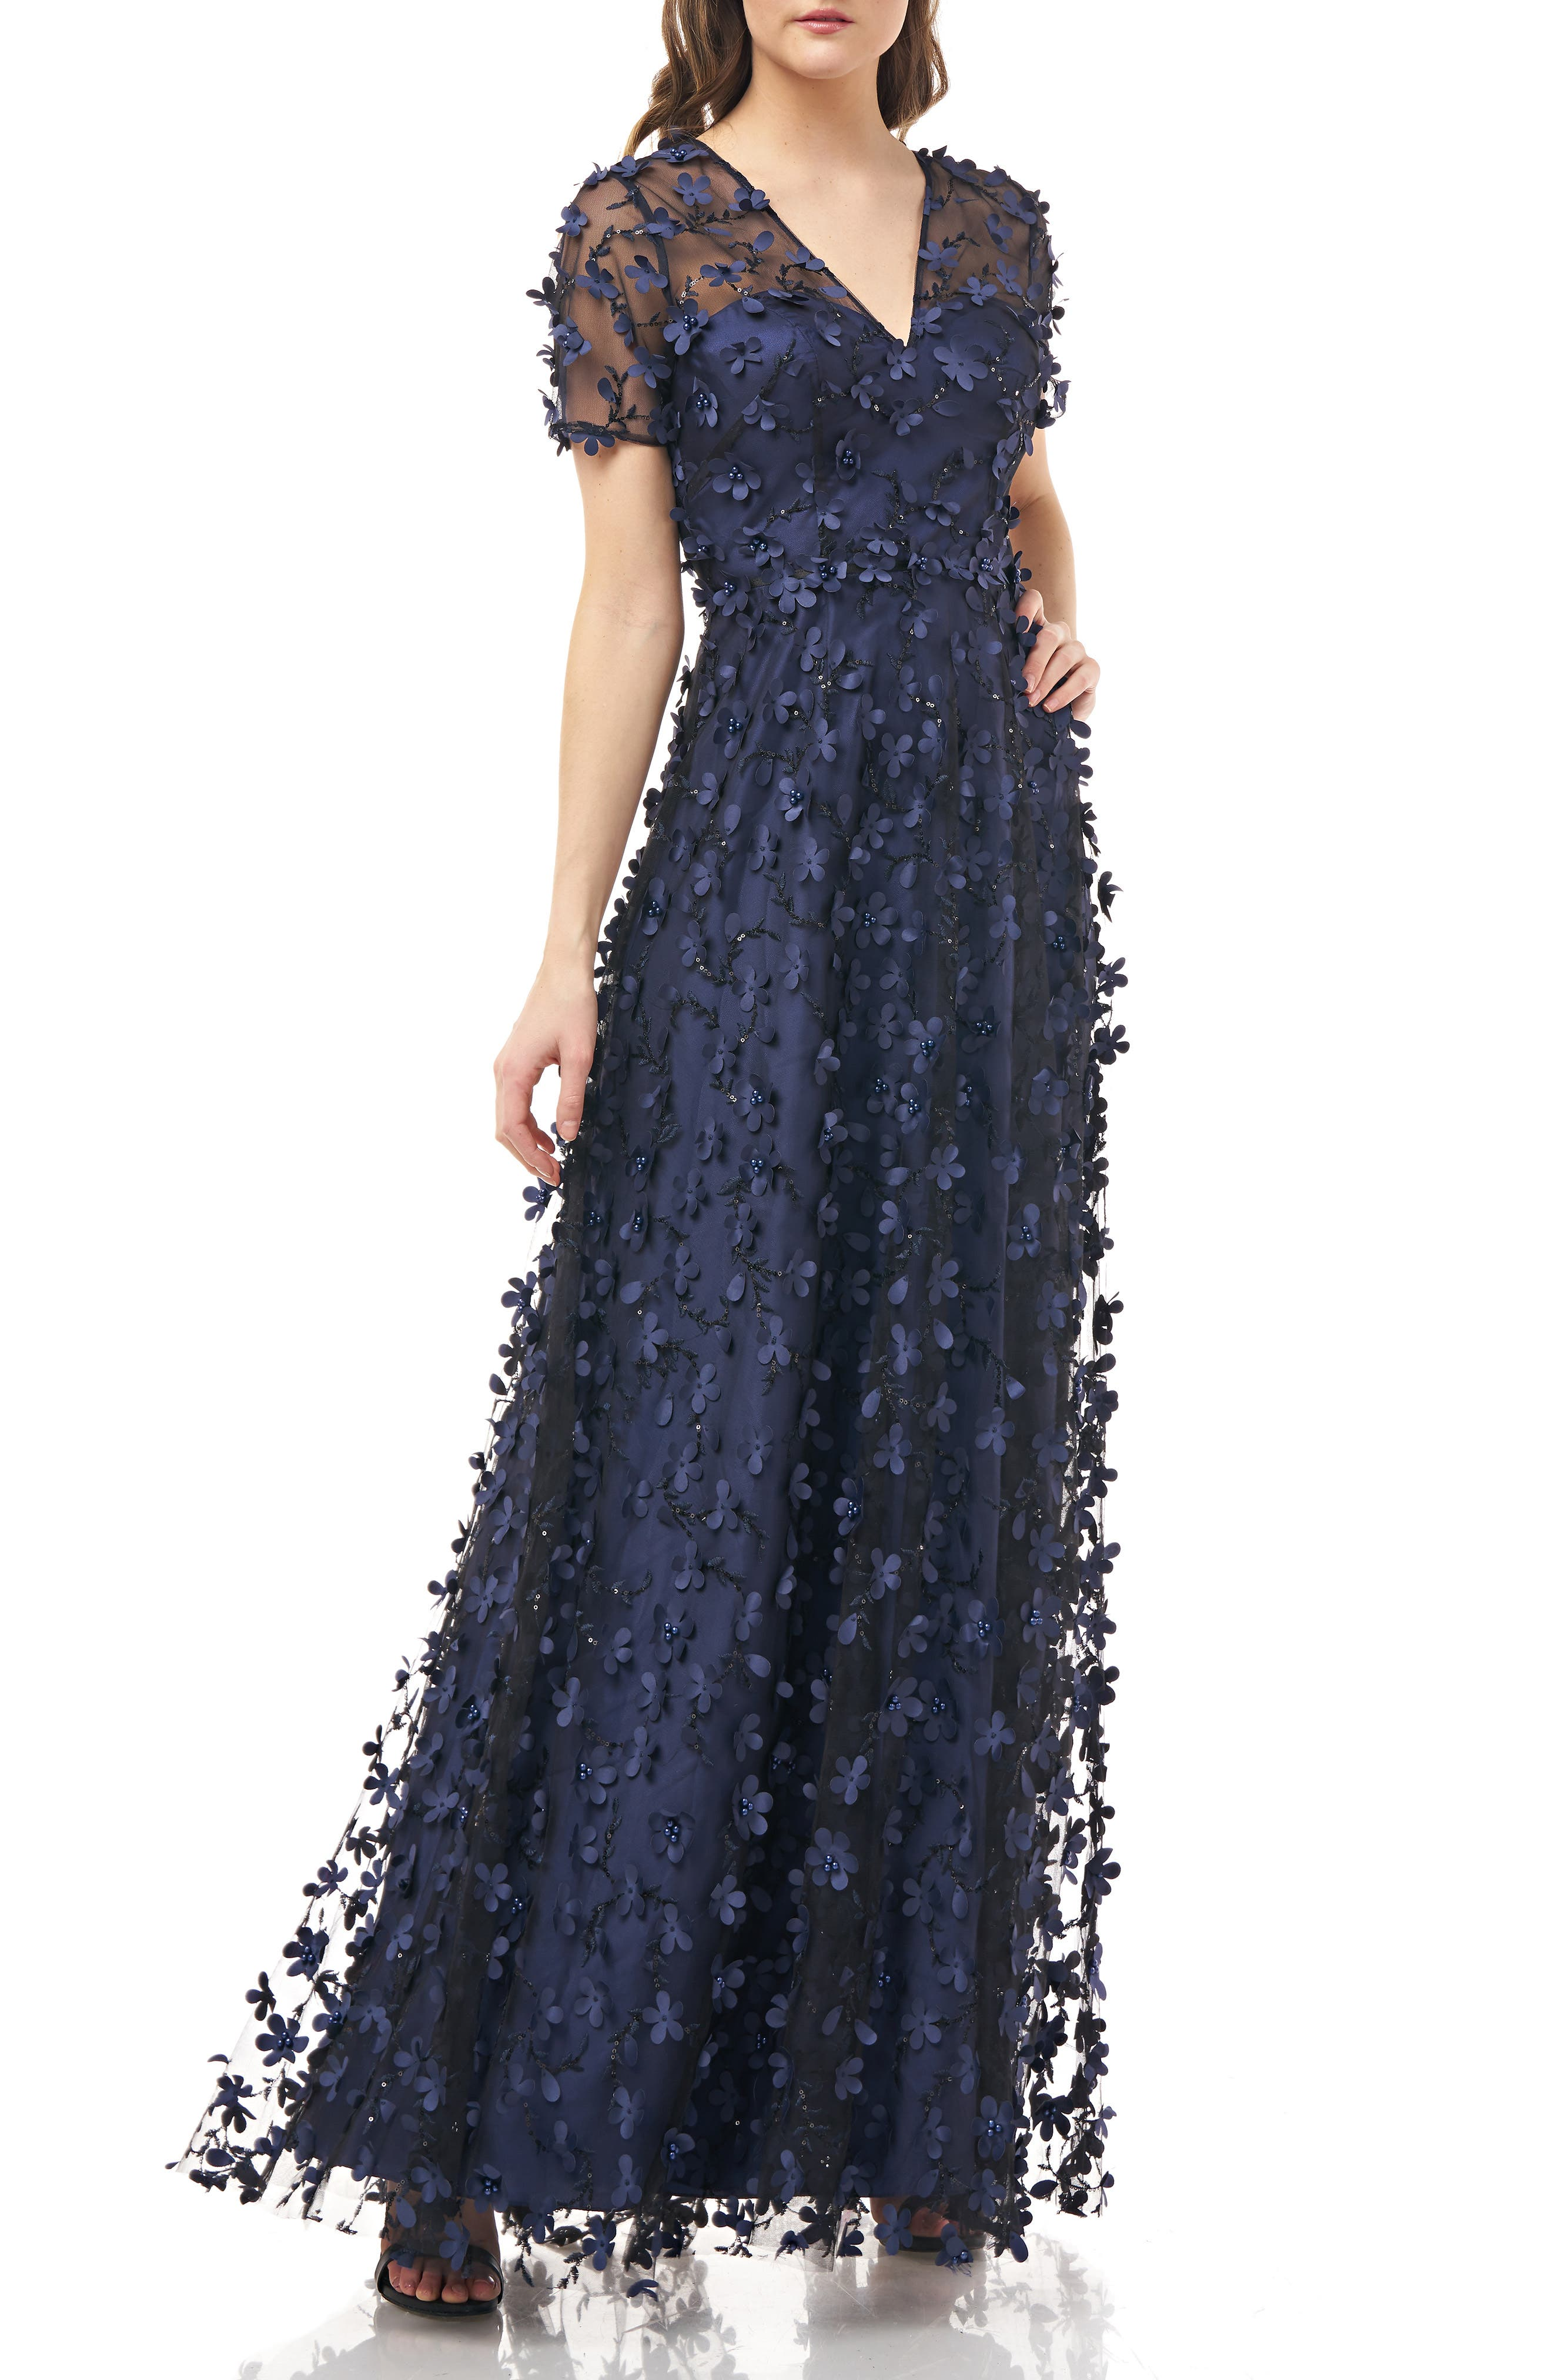 Gowns Dresses 400 To 1000